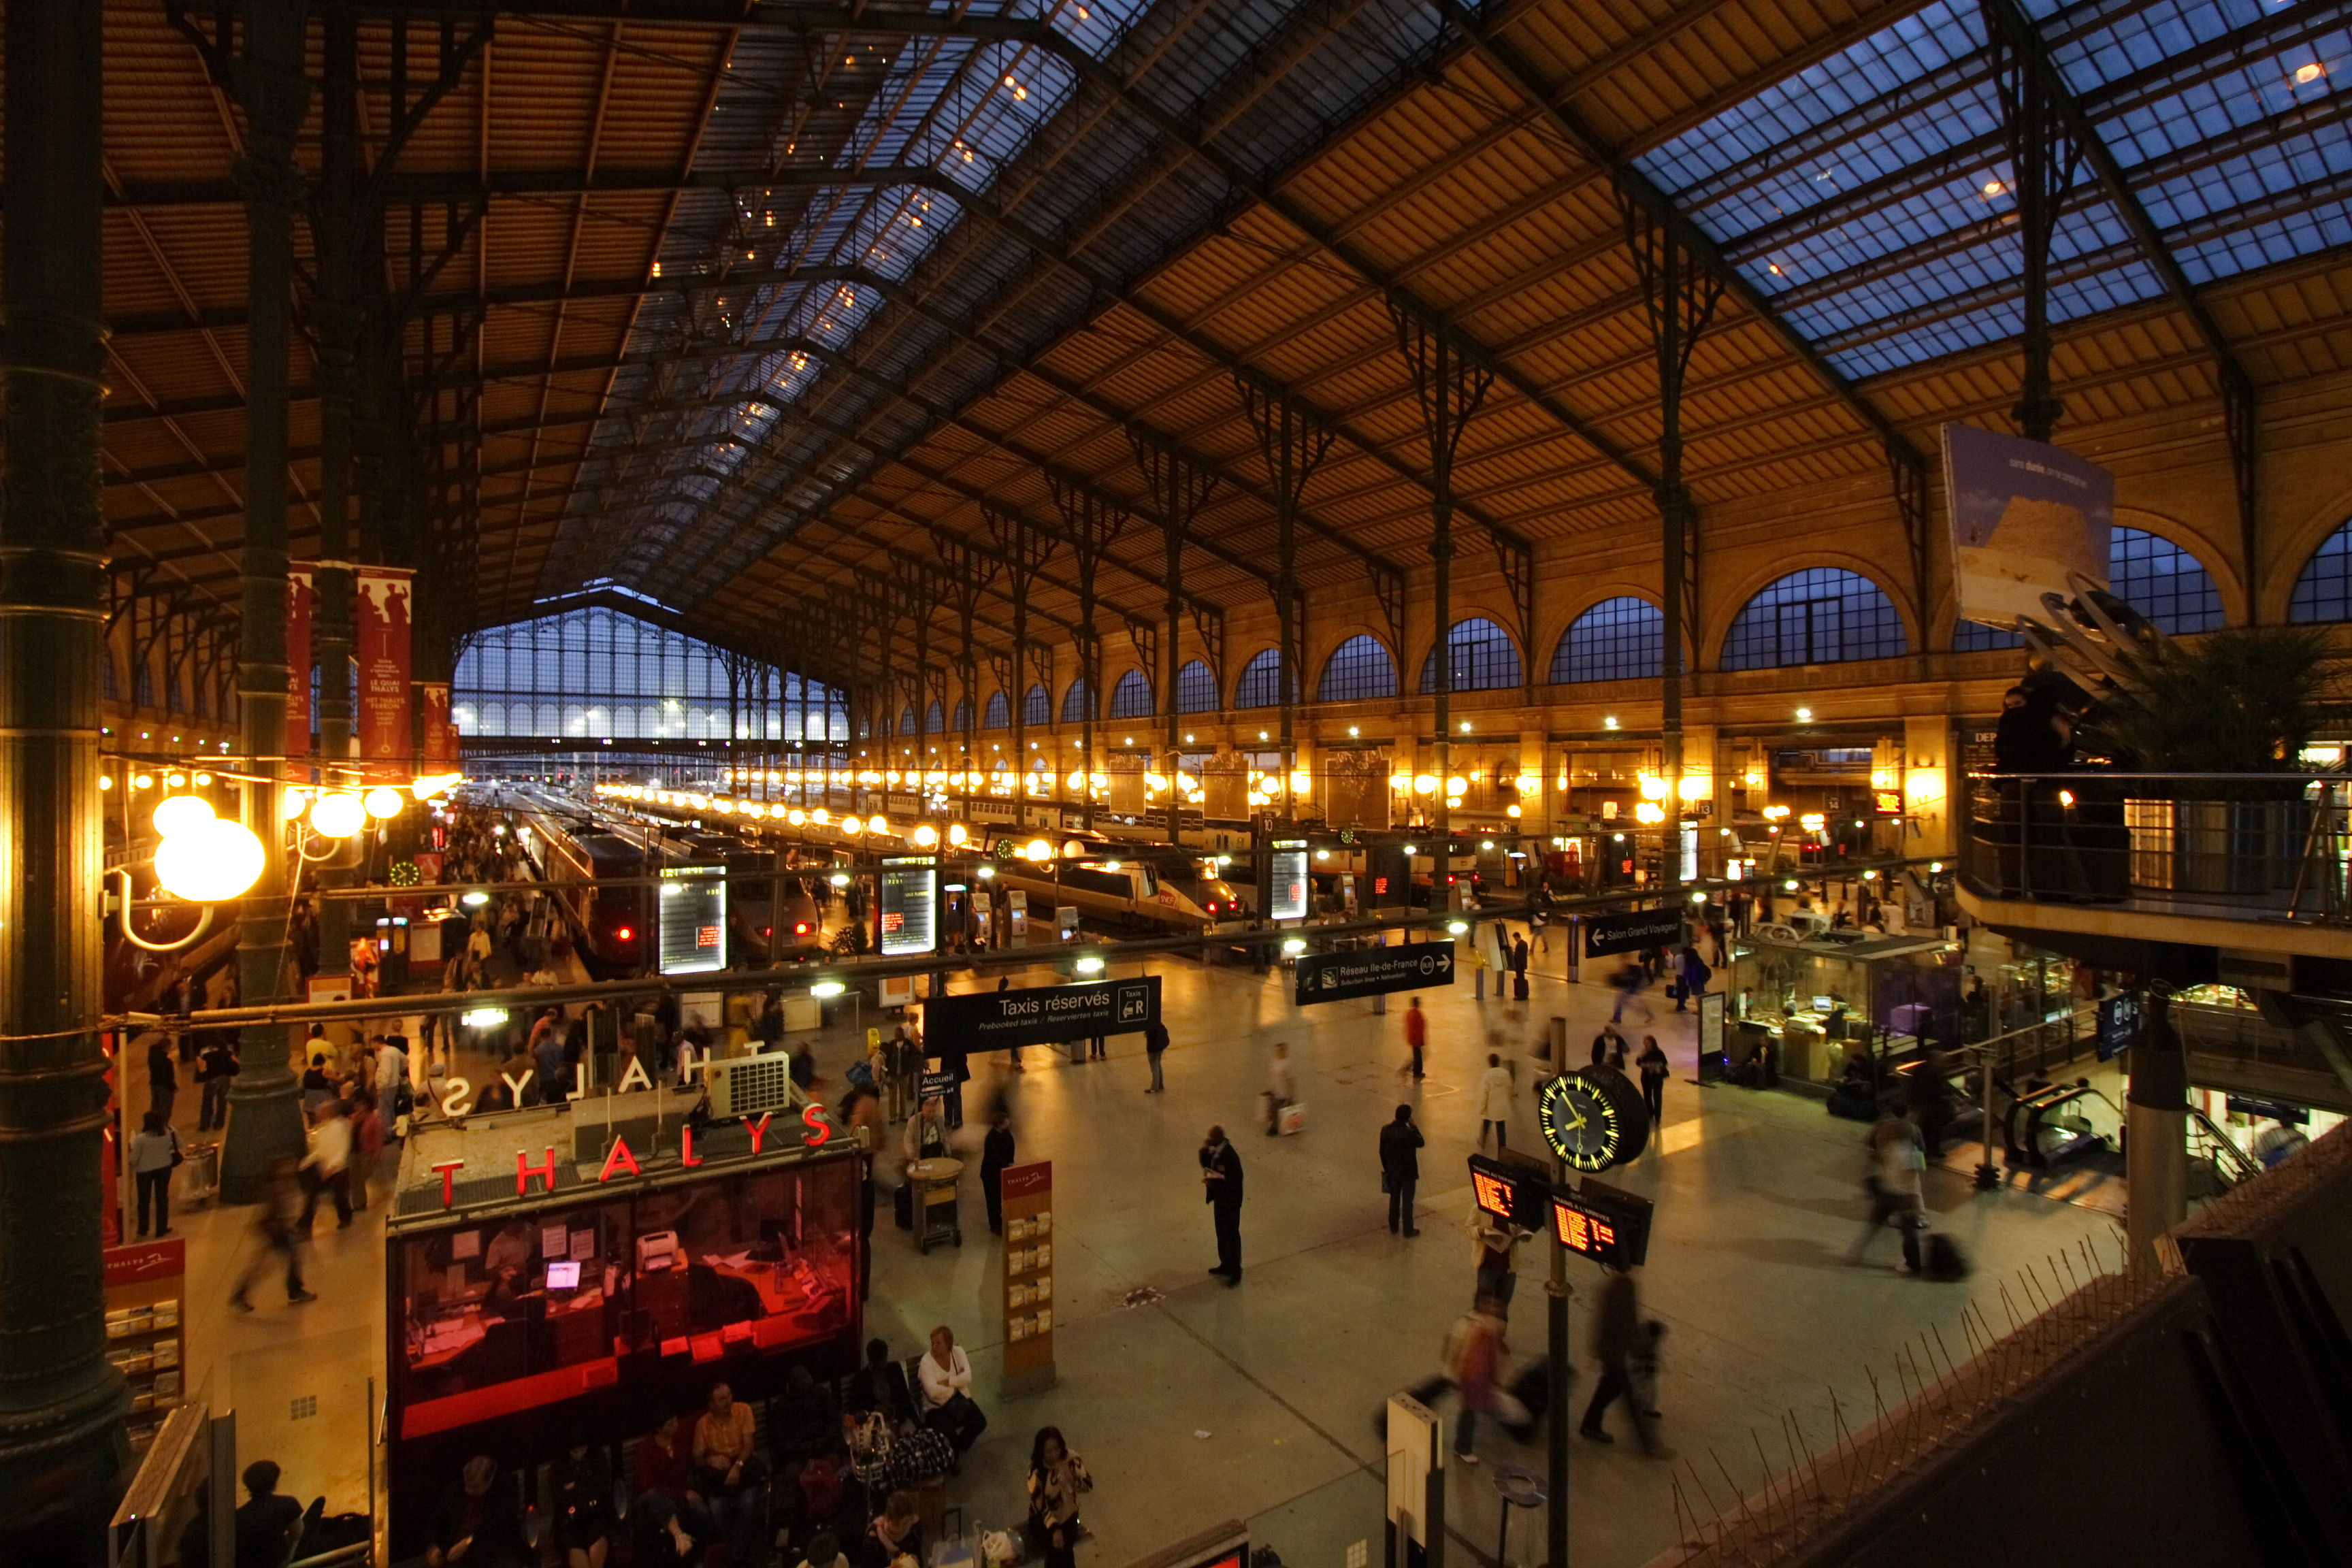 l er gare du nord night paris fra 001 jpg wikipedia. Black Bedroom Furniture Sets. Home Design Ideas